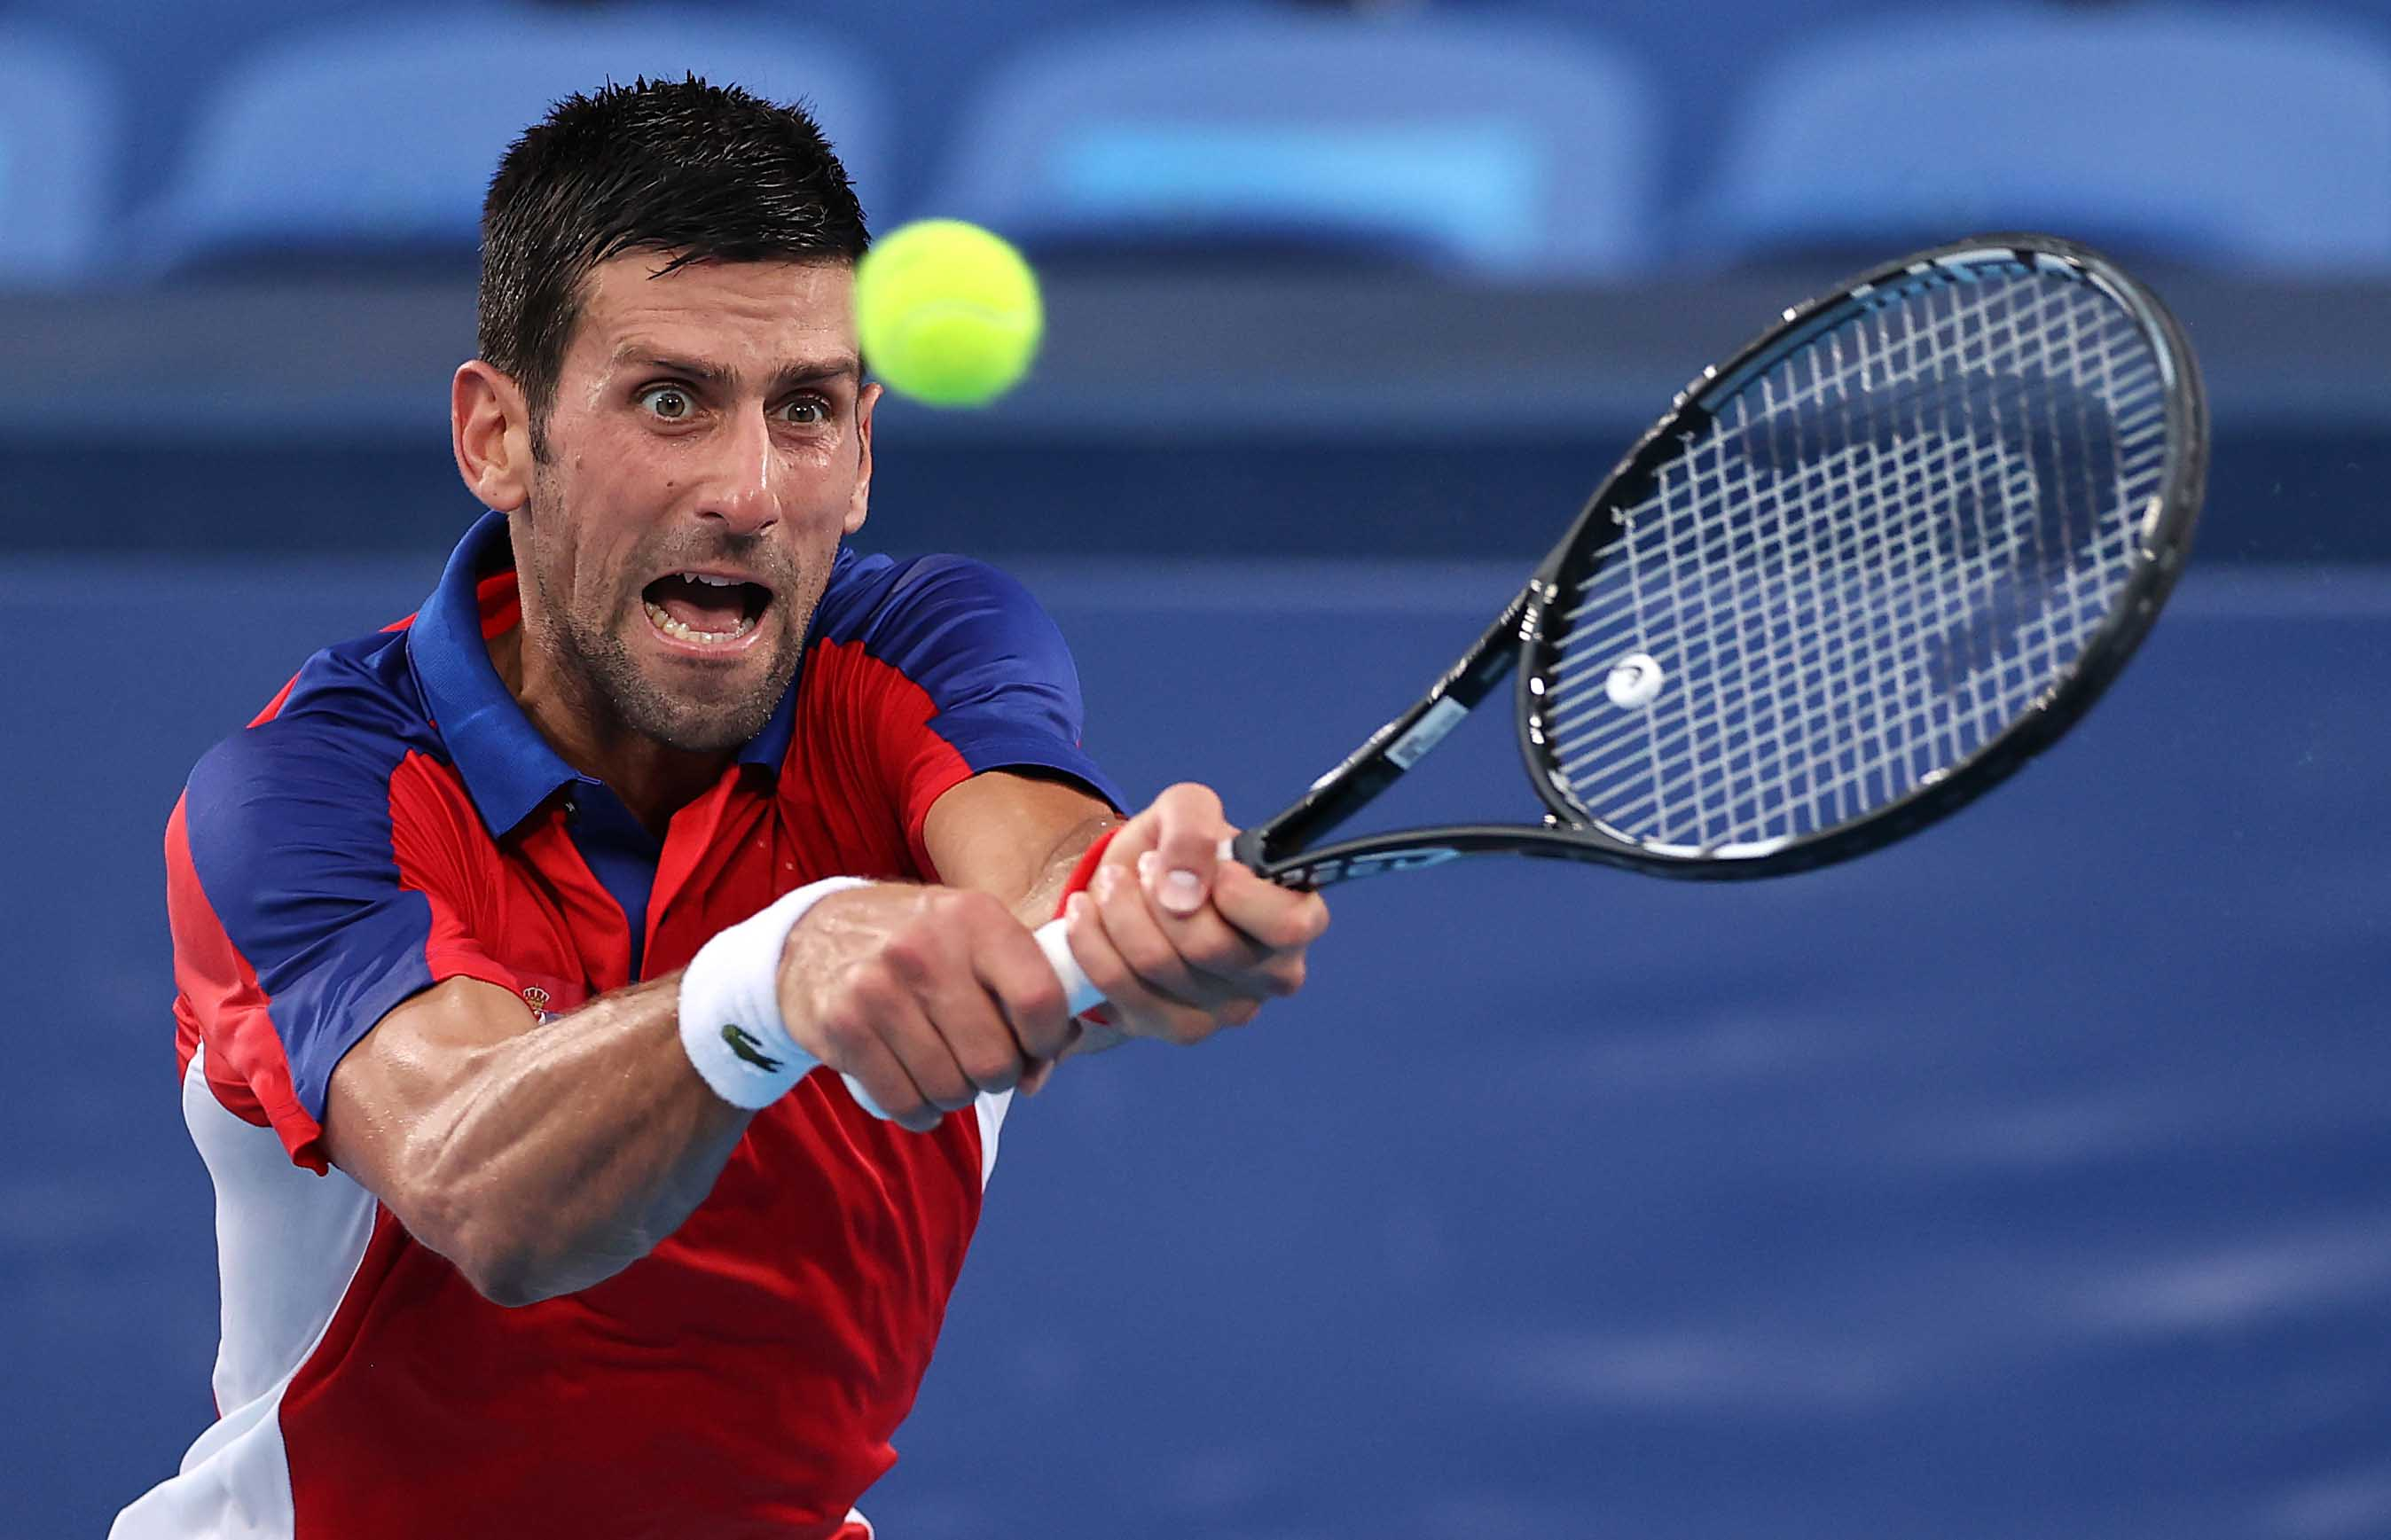 Novak Djokovic of Serbia plays a backhand during his Men's Singles Semifinal match against Alexander Zverev of Germany on July 30.